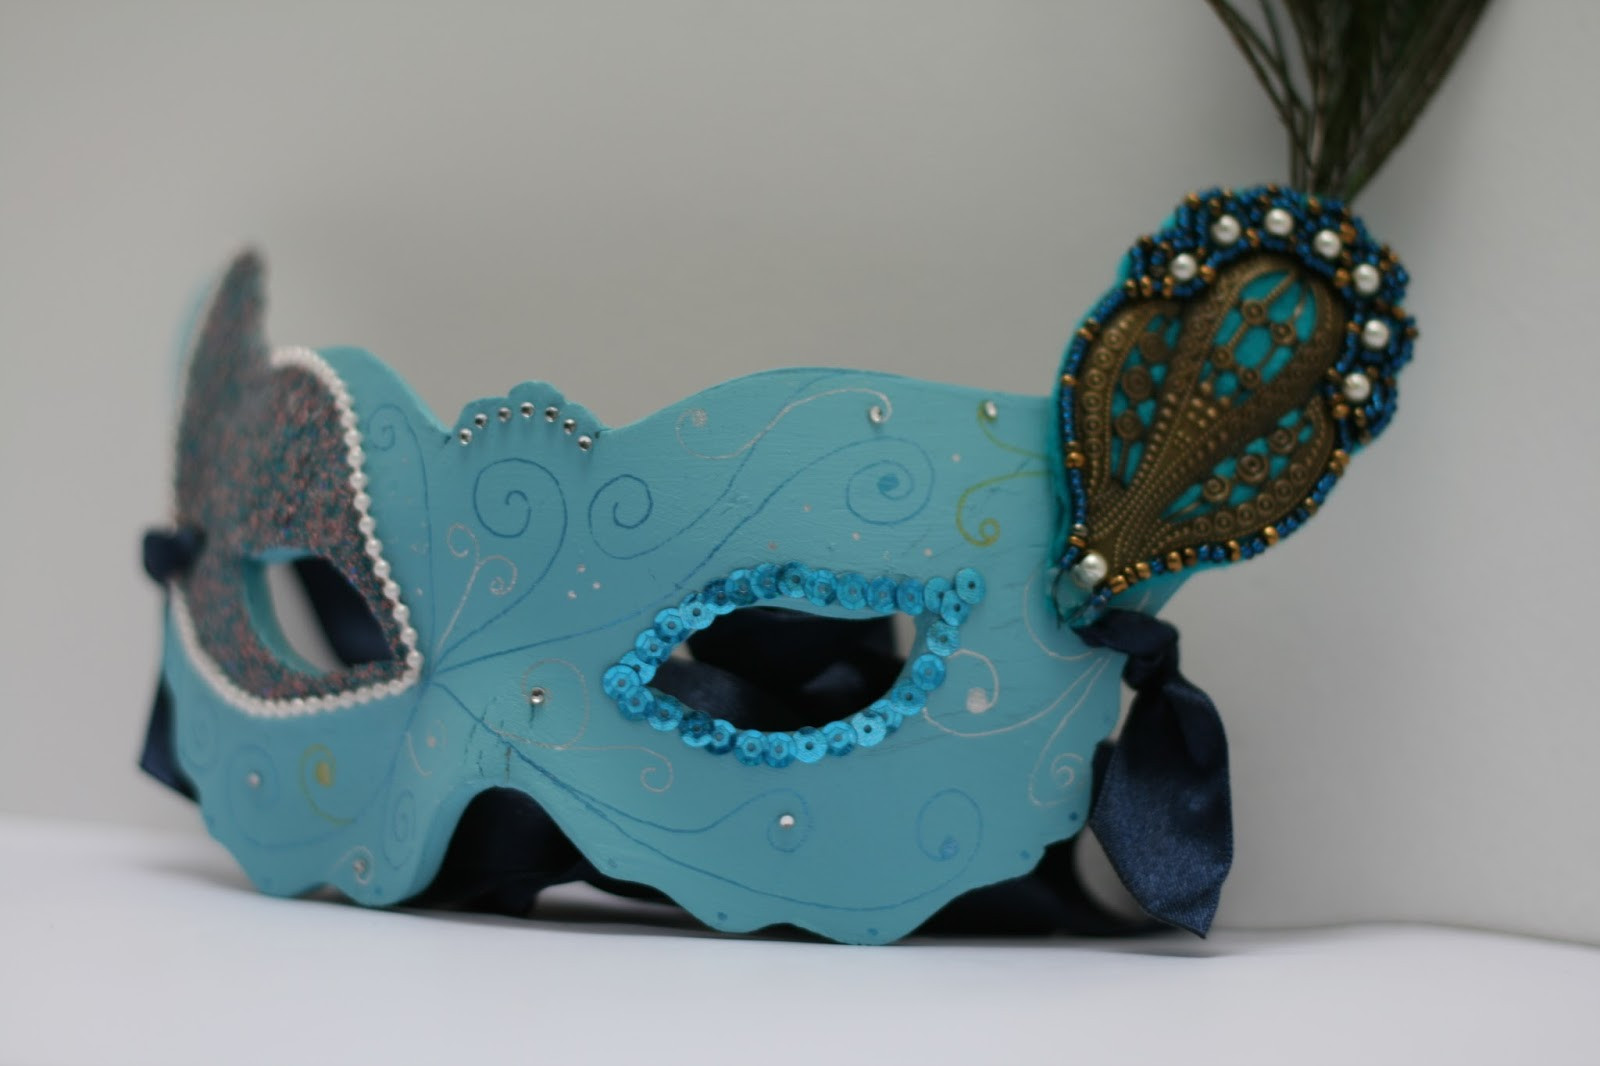 Best ideas about DIY Masquerade Mask . Save or Pin Masquerade Mask DIY Oh Gosh Now.